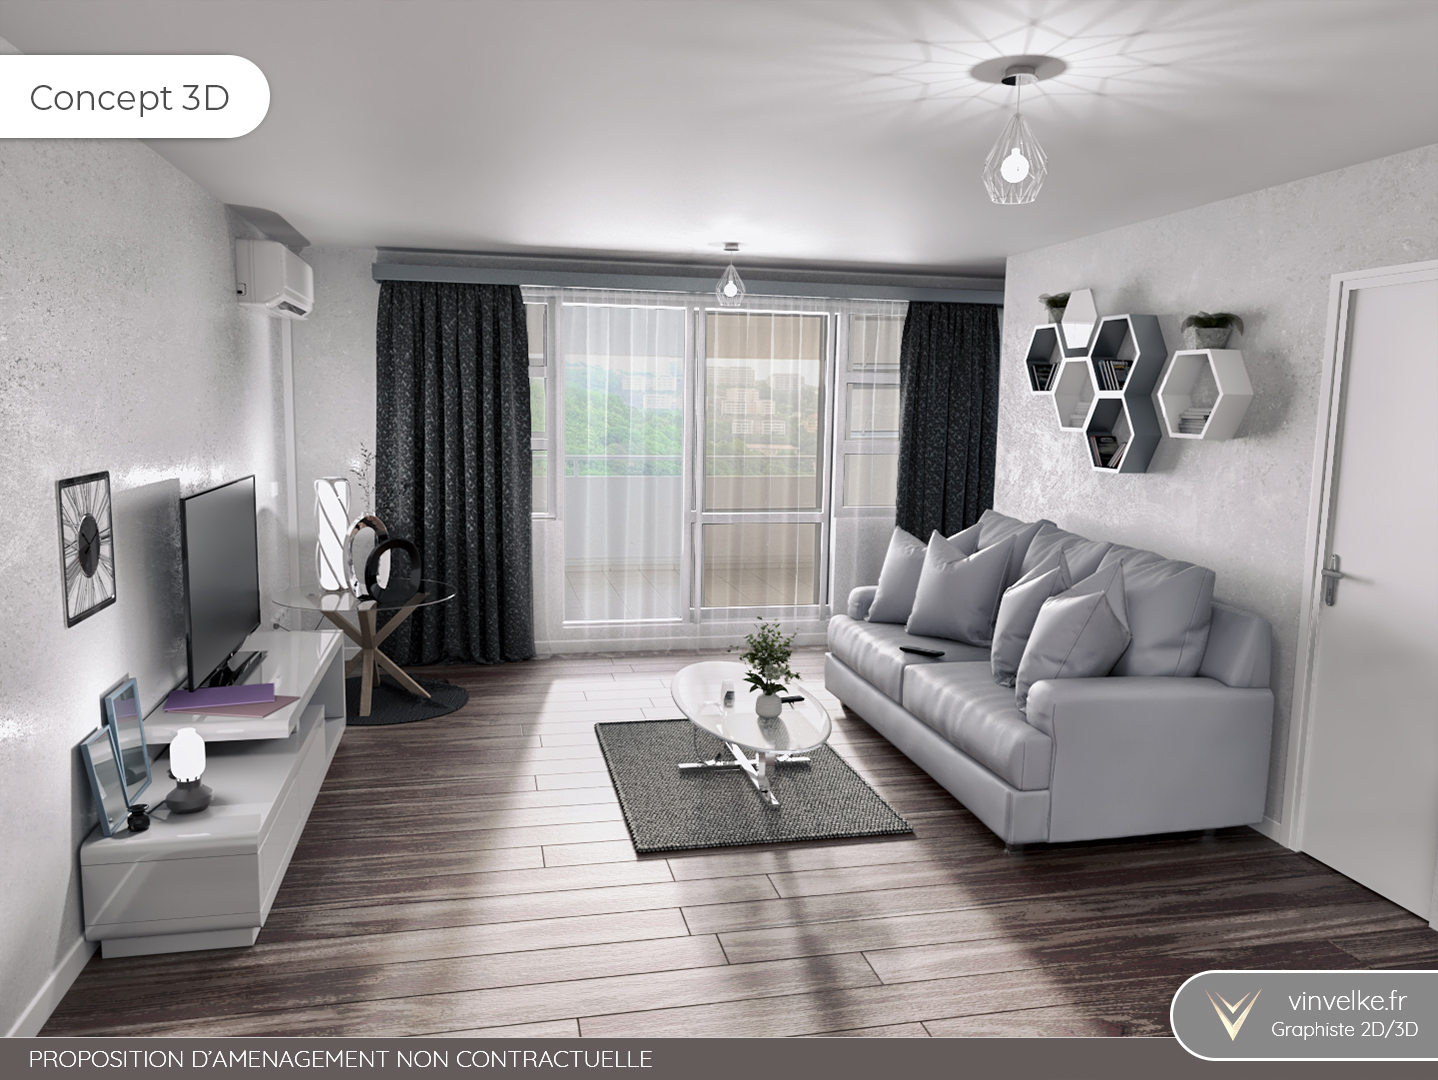 concept 3d du home staging pour un salon